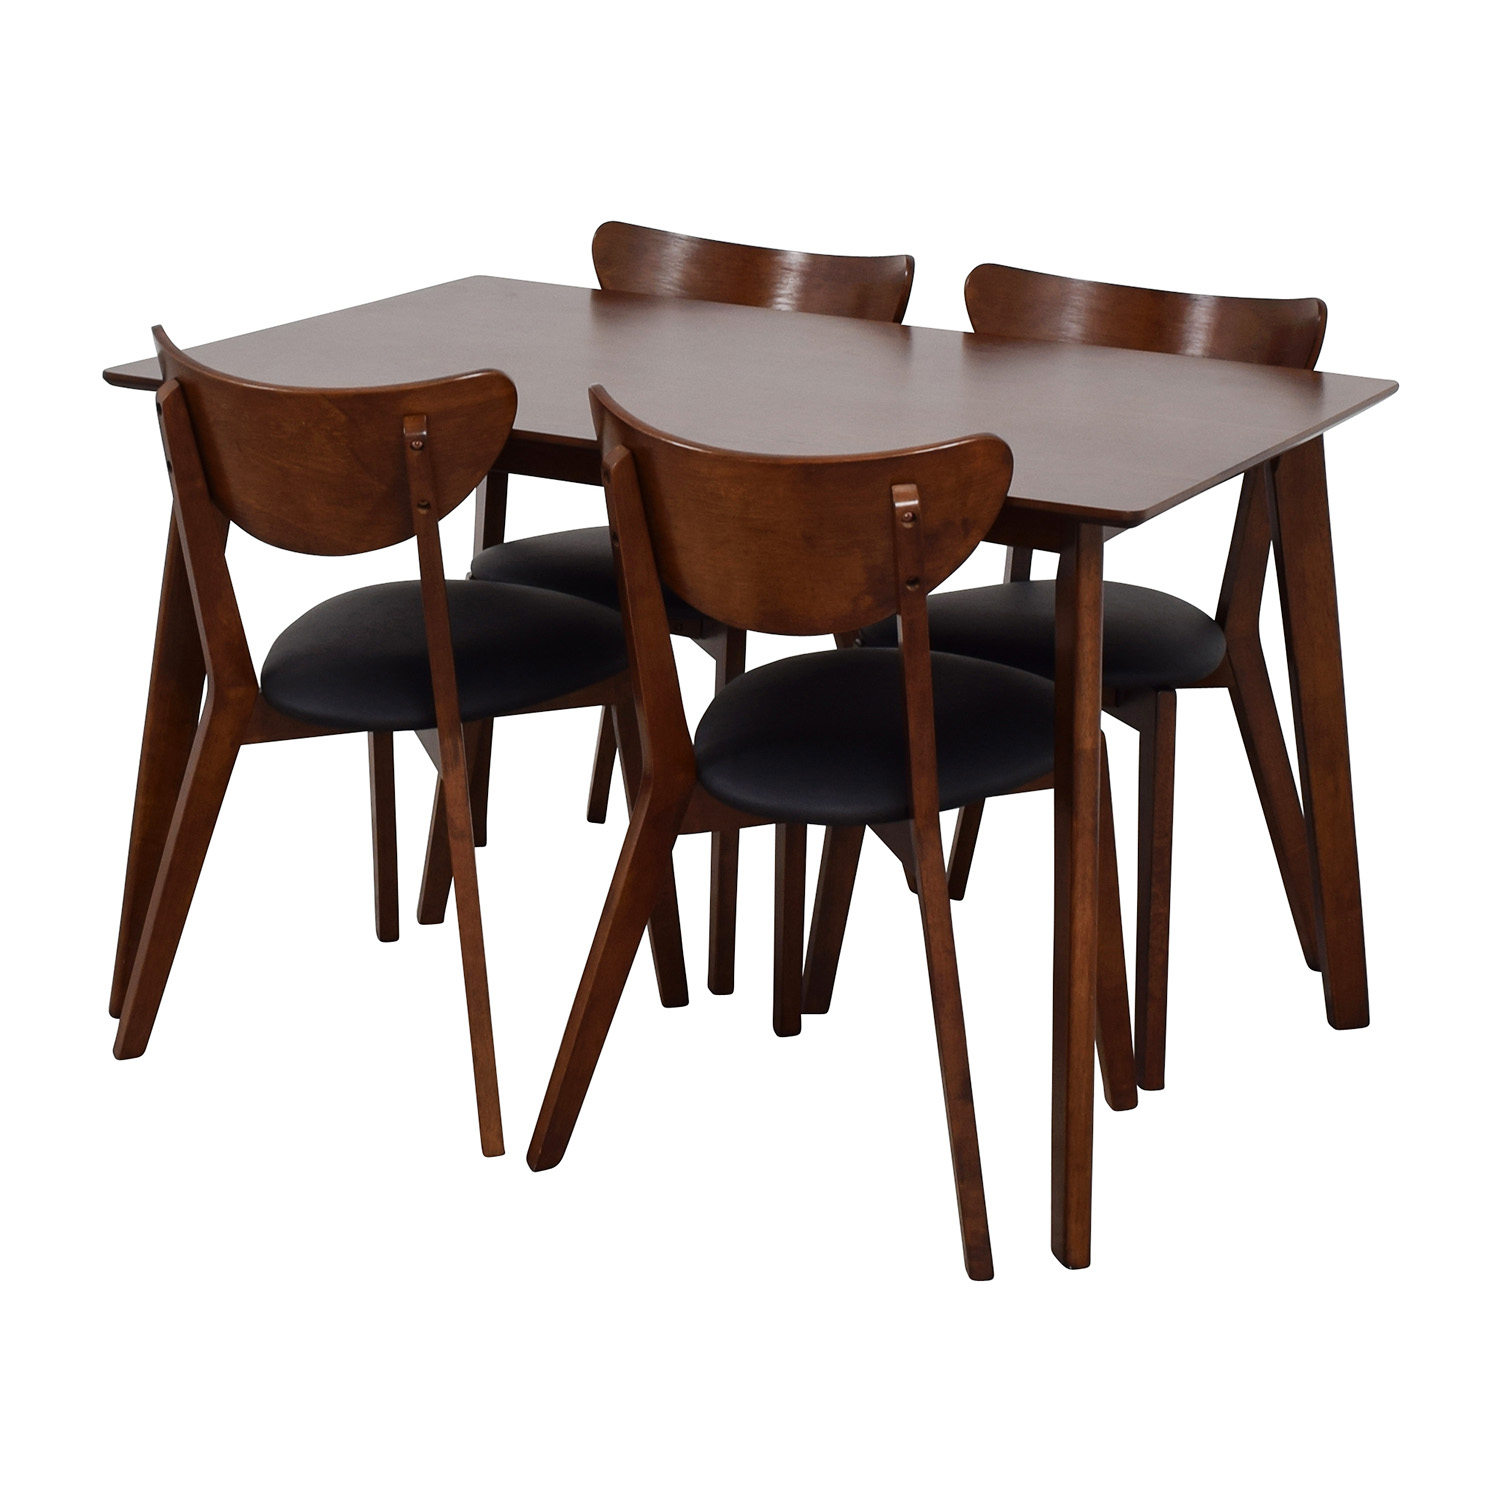 Wholesale Interiors Brown Dining Table Set with Four Chairs Tables